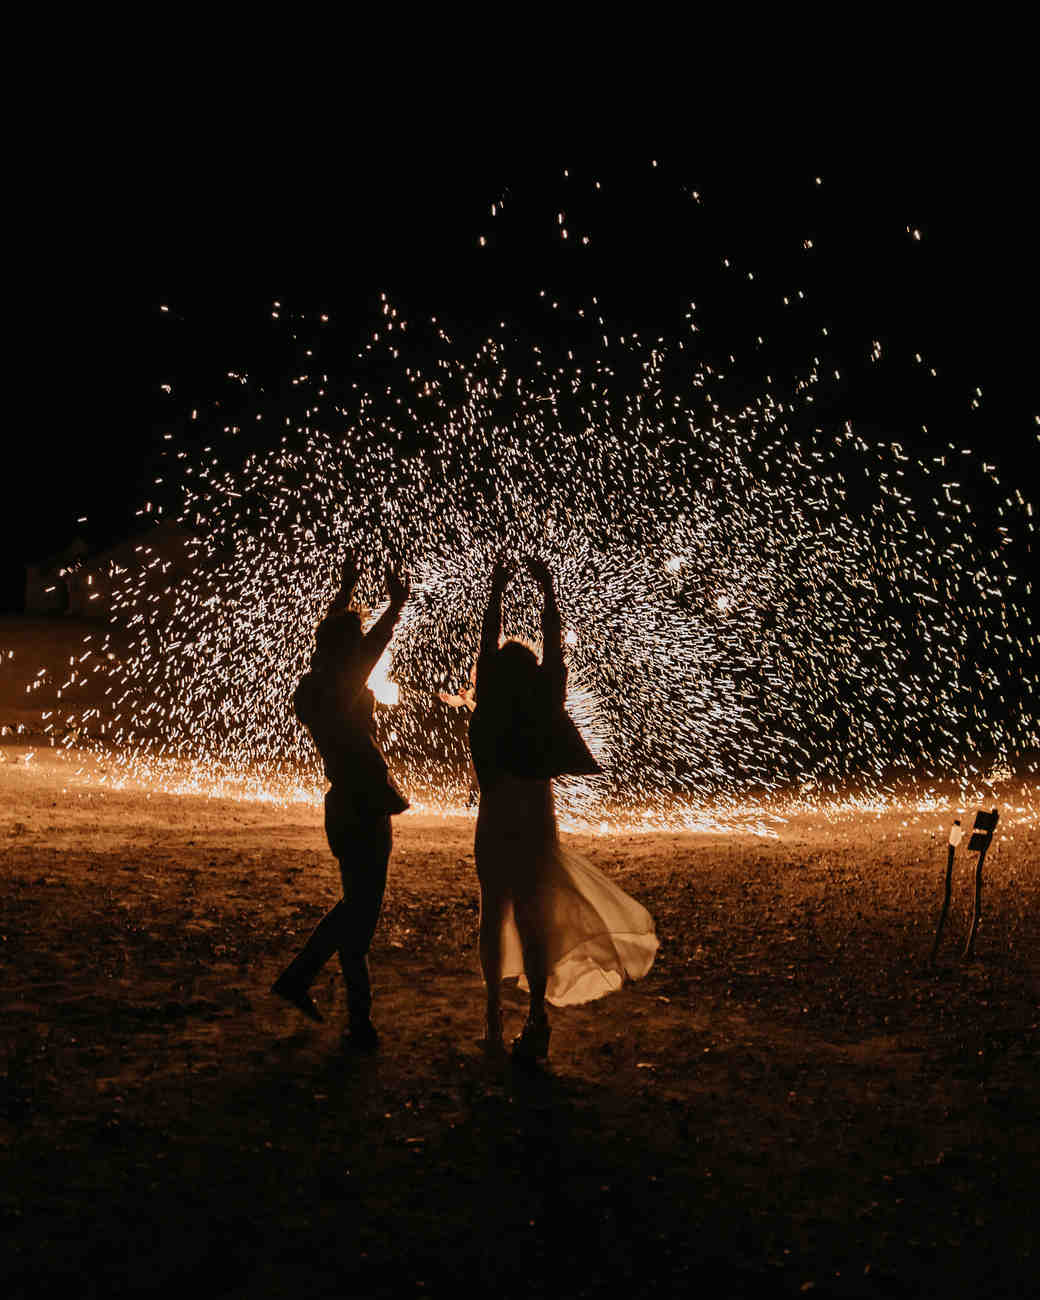 Wedding Photography Sparklers: Amazing Fireworks And Sparklers From Real Weddings